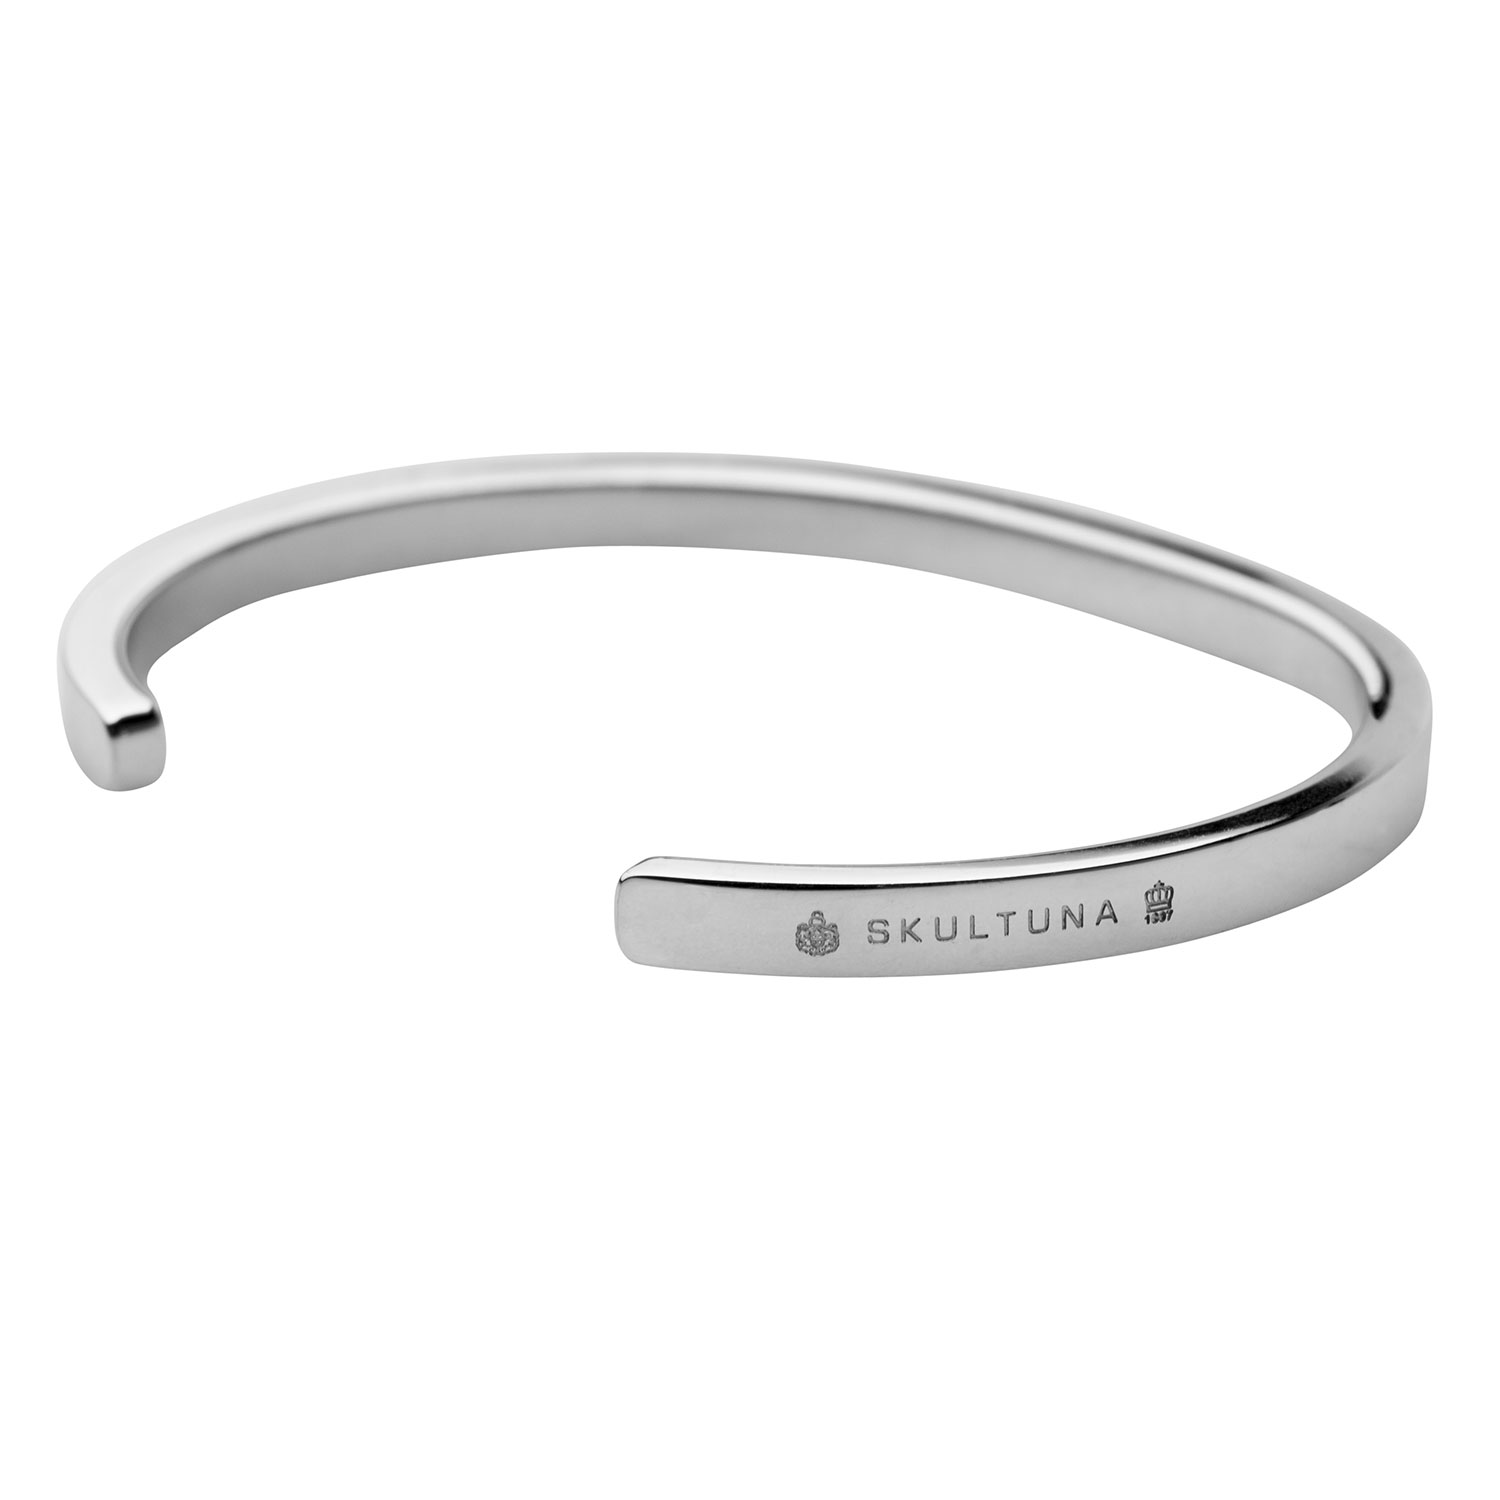 Skultuna-SB Thin Armband Polished Steel, 65 mm